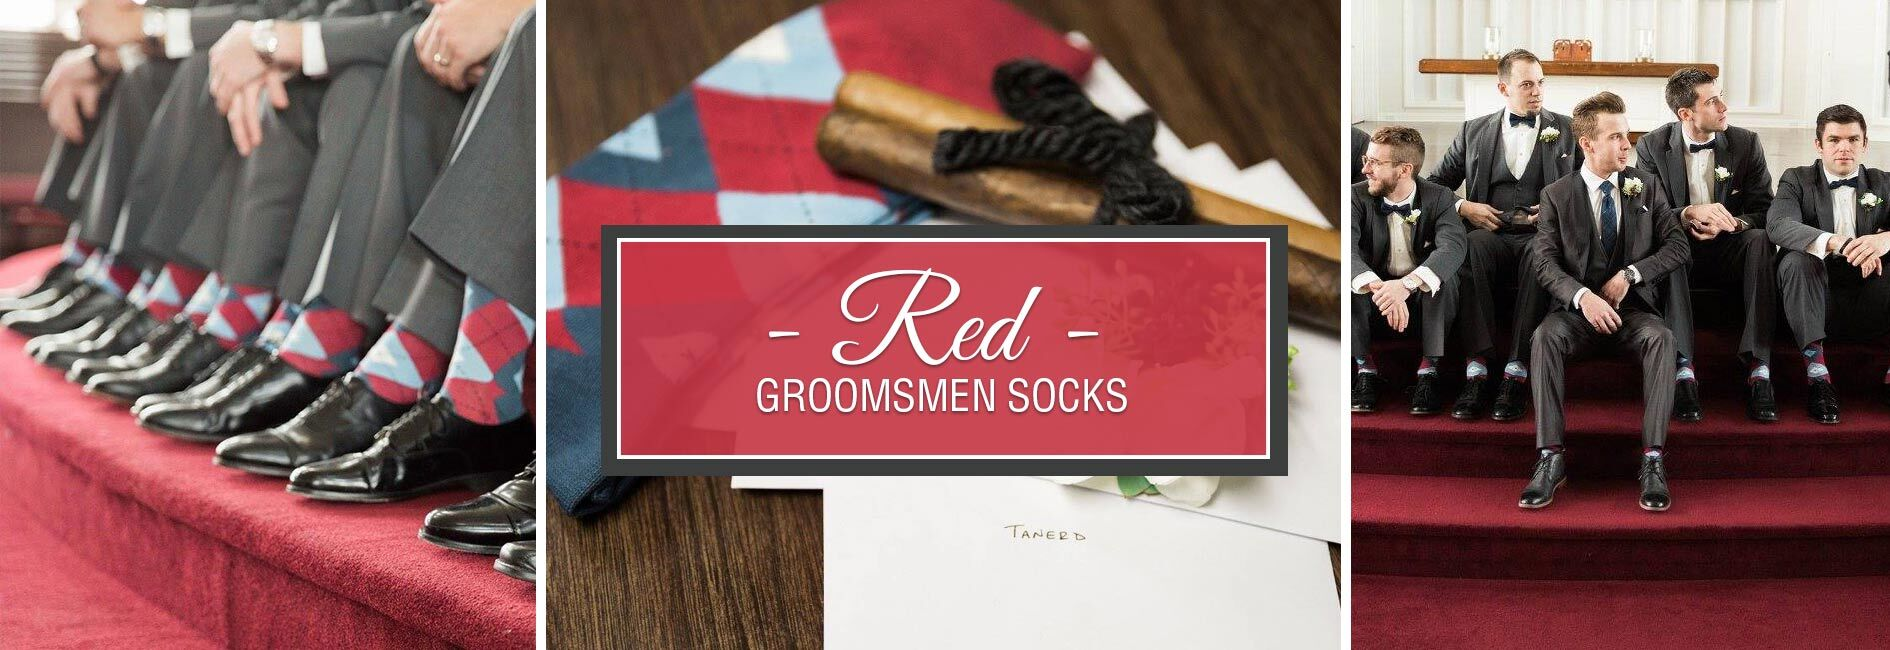 Red Groomsmen Wedding Socks Banner